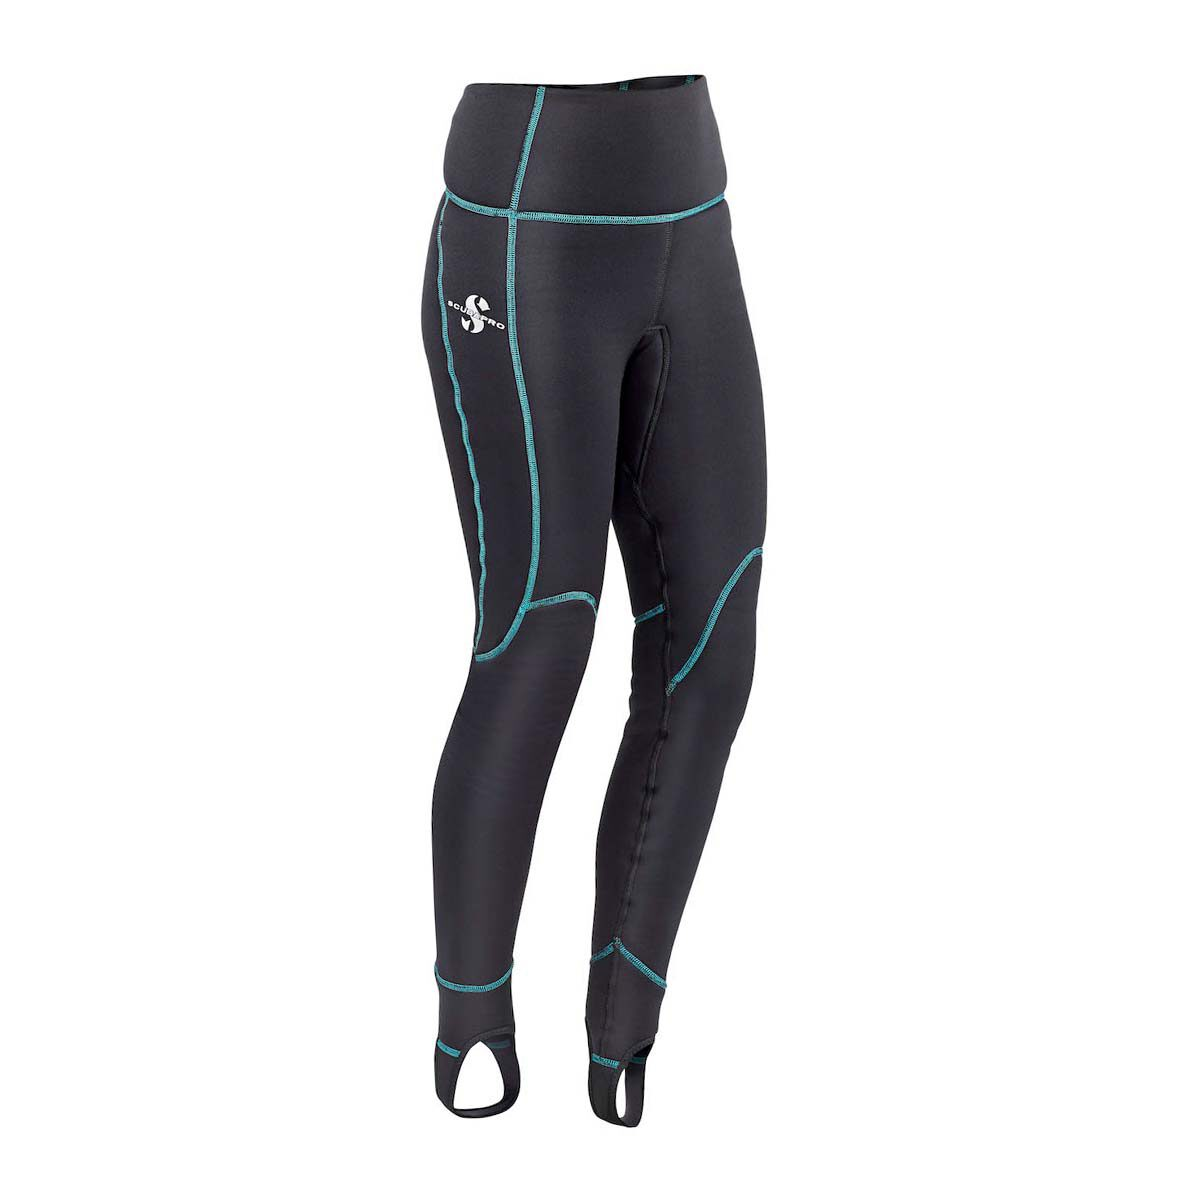 k2 Medium d broek